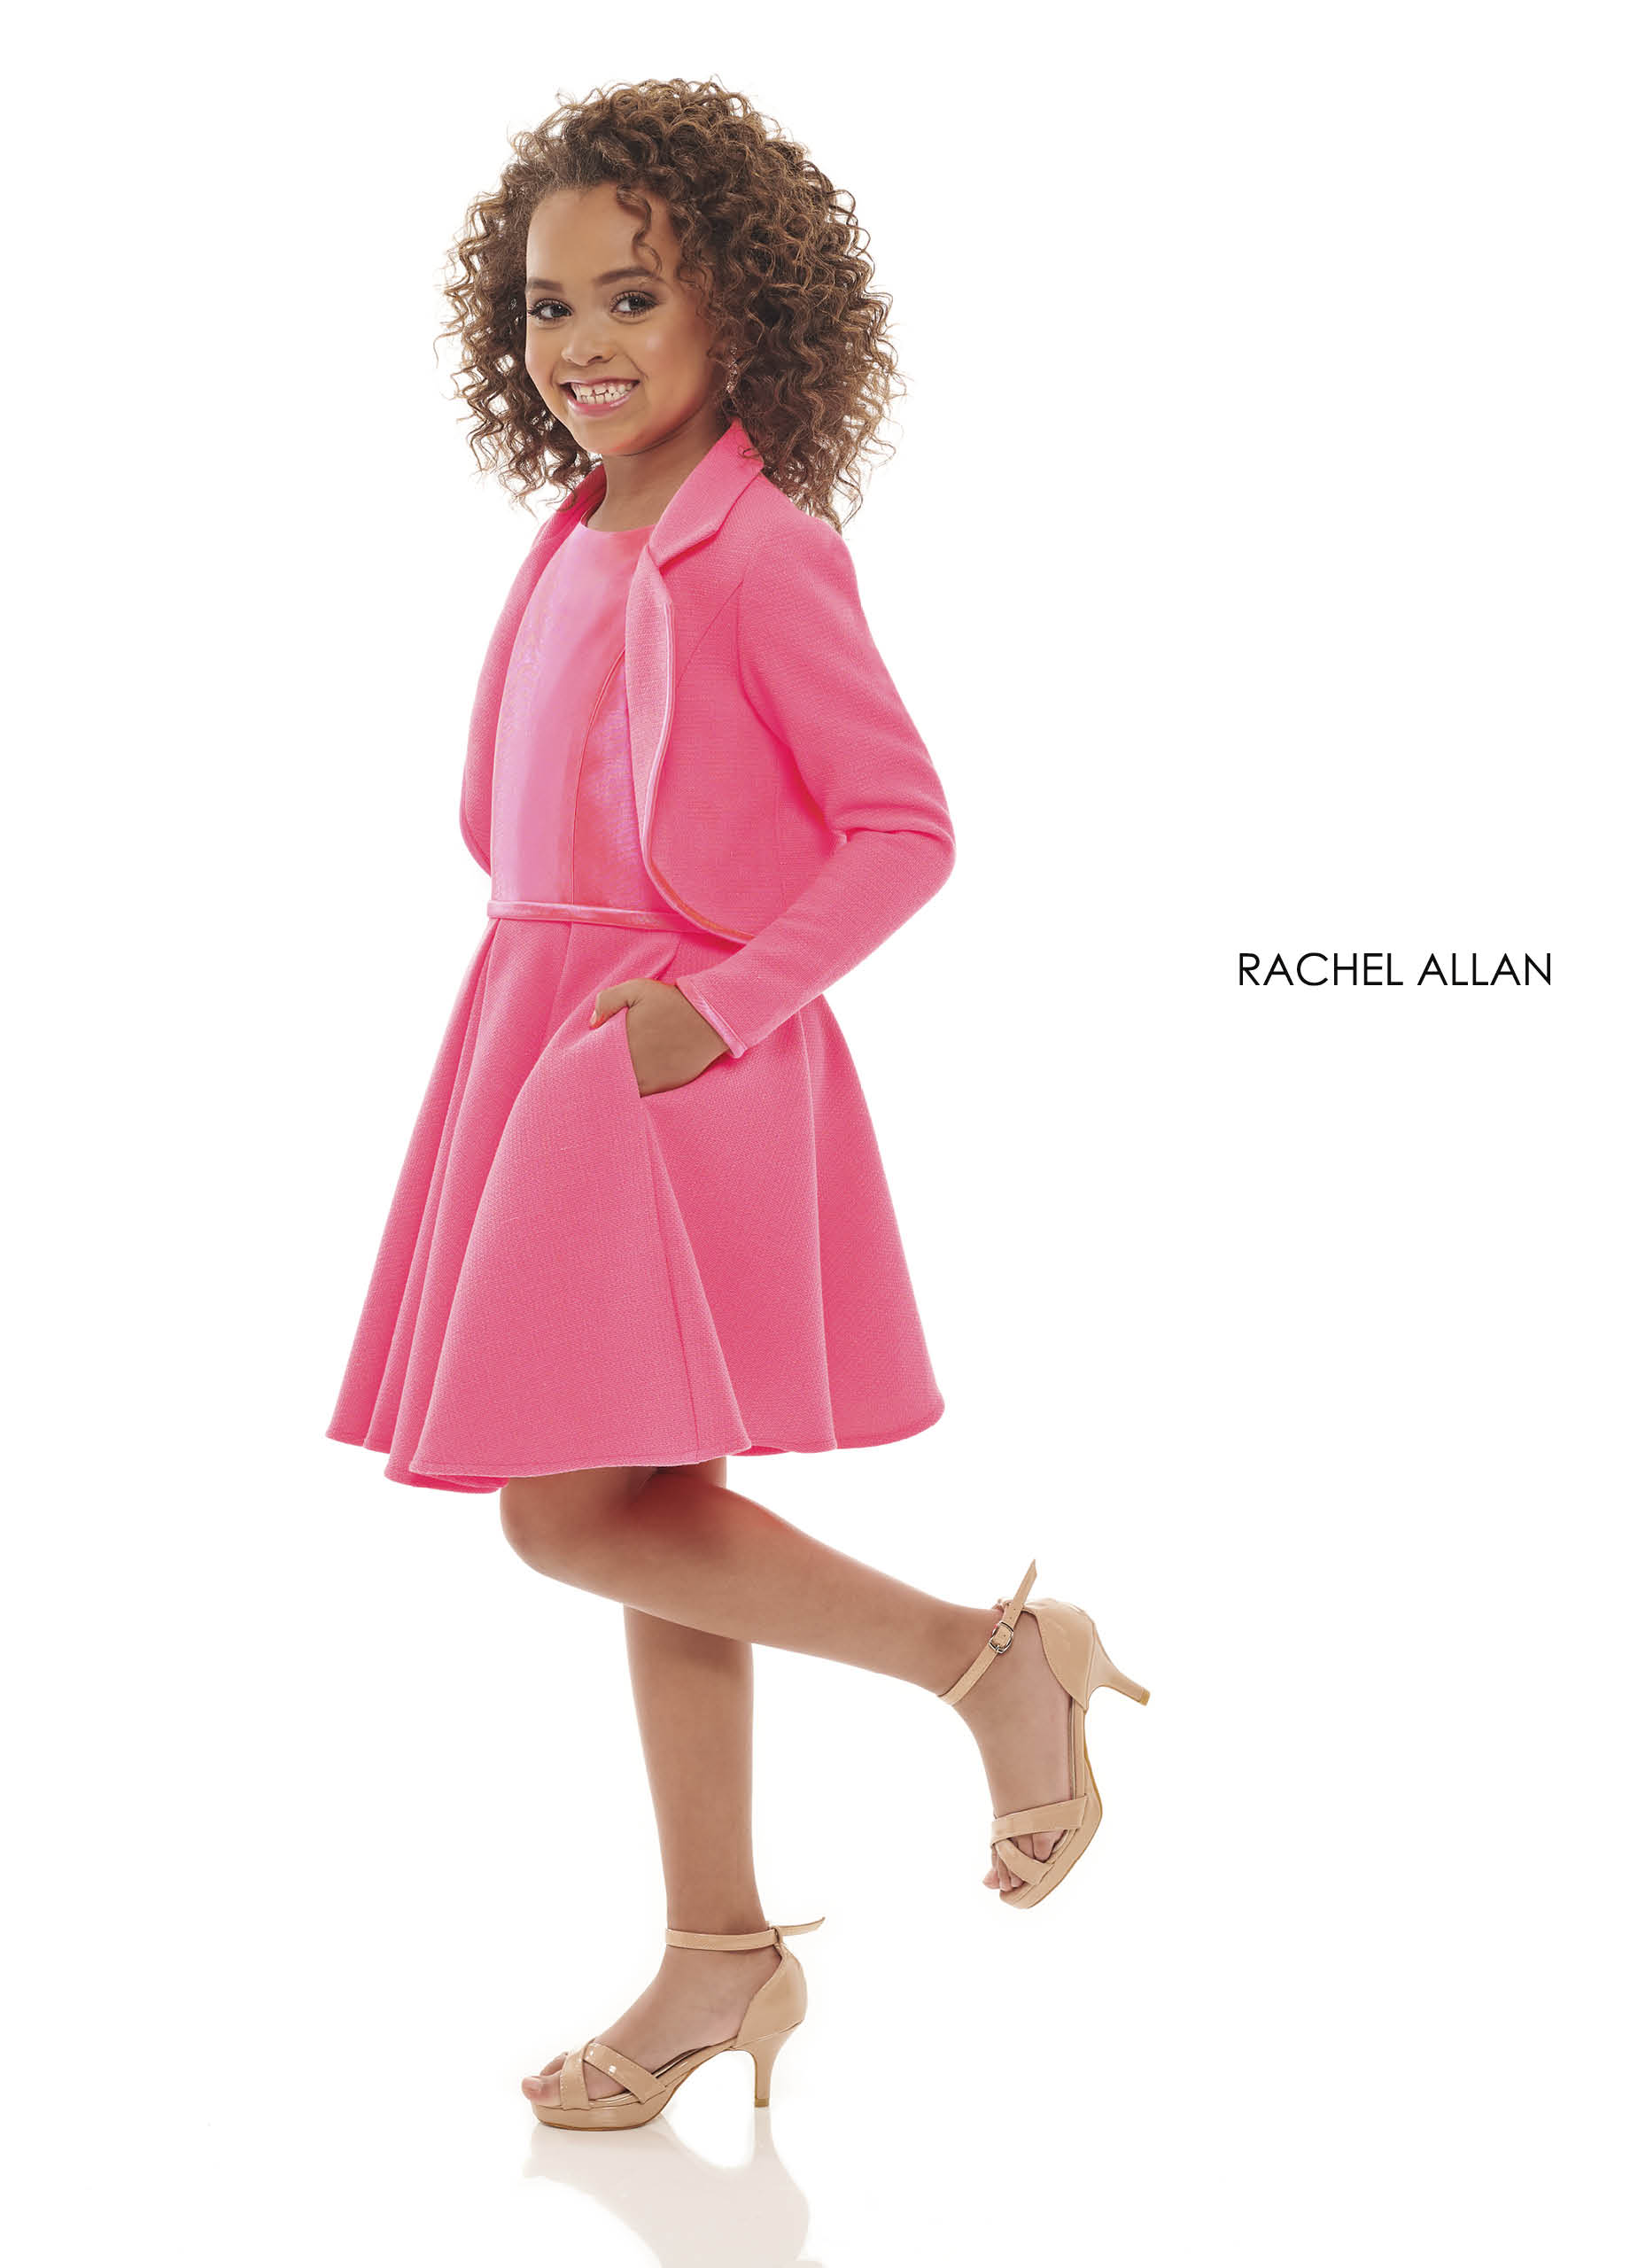 High Neckline A-Line Little Girl Pageant Dresses in Pink Color